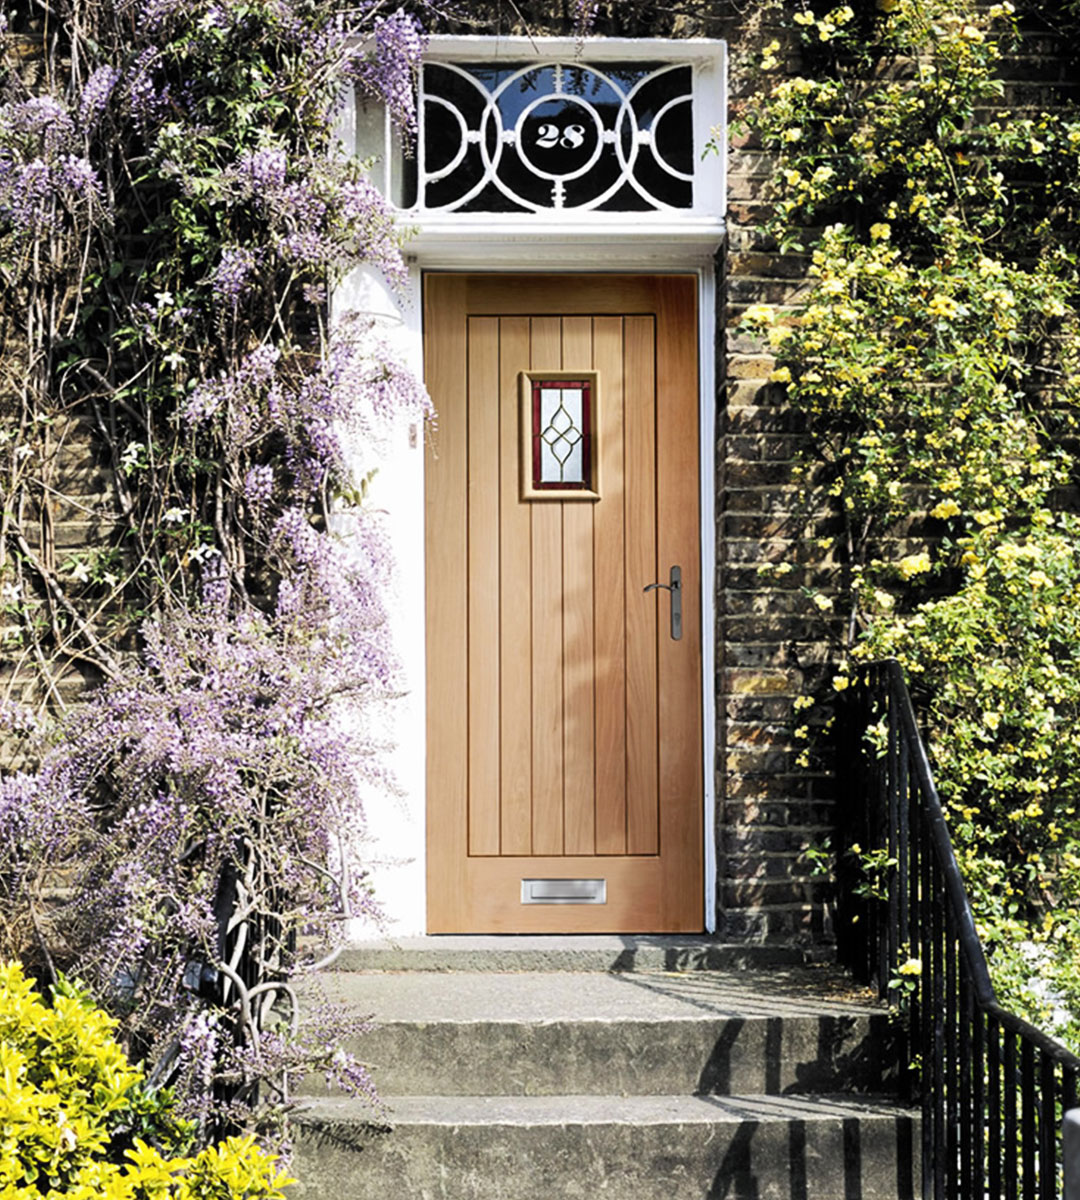 chancery onyx external glass door glazed exterior front door